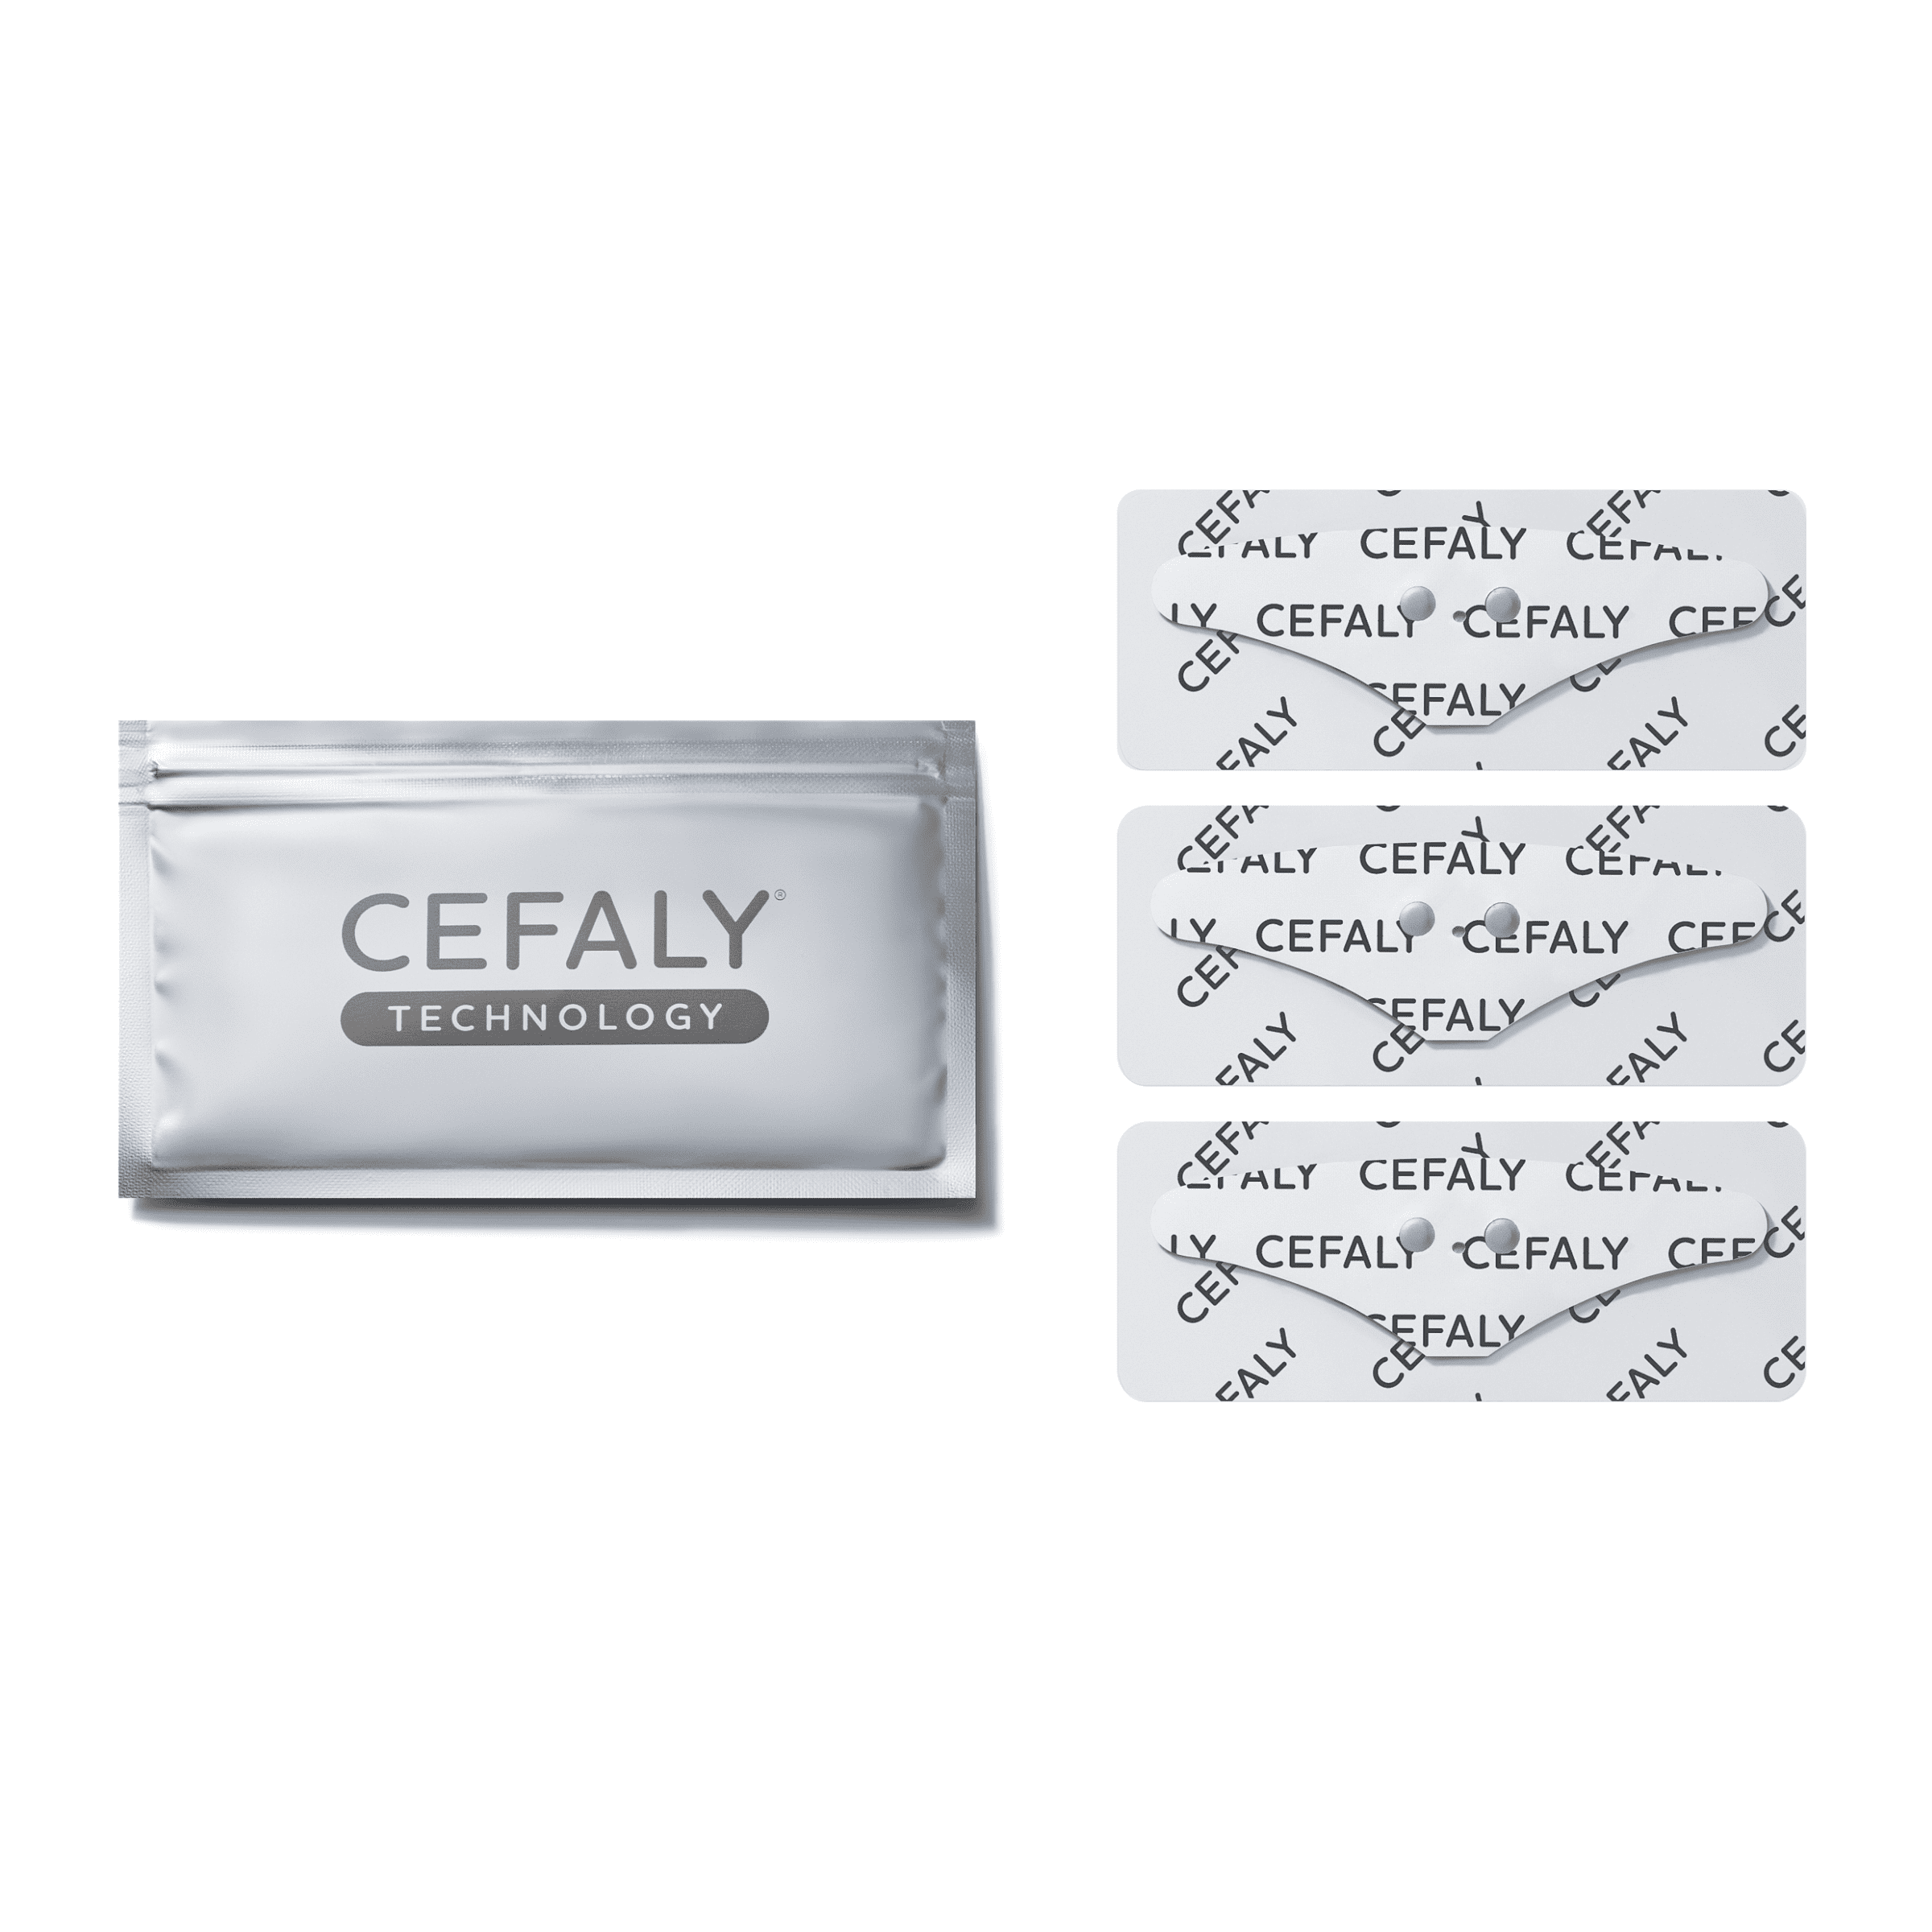 Cefaly Migraine treatment and prevention device with electrode laid out on work desk  5